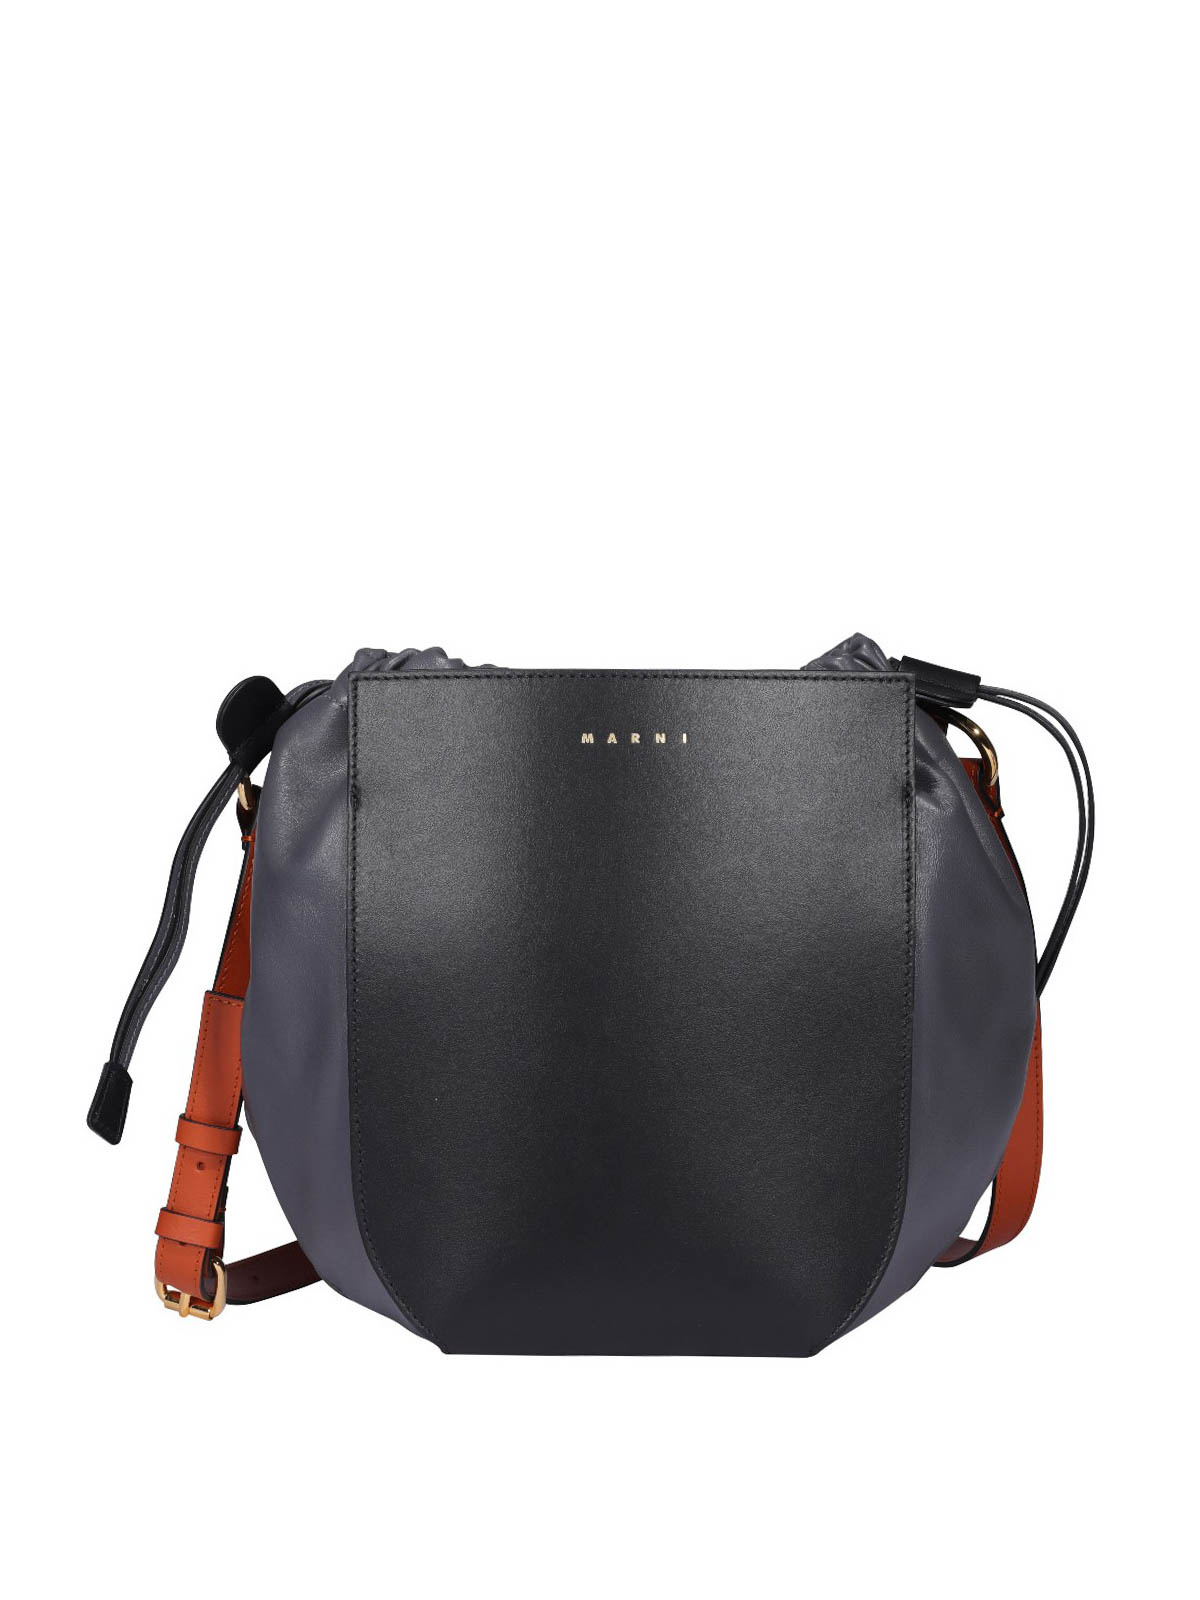 Marni LEATHER BUCKET BAG